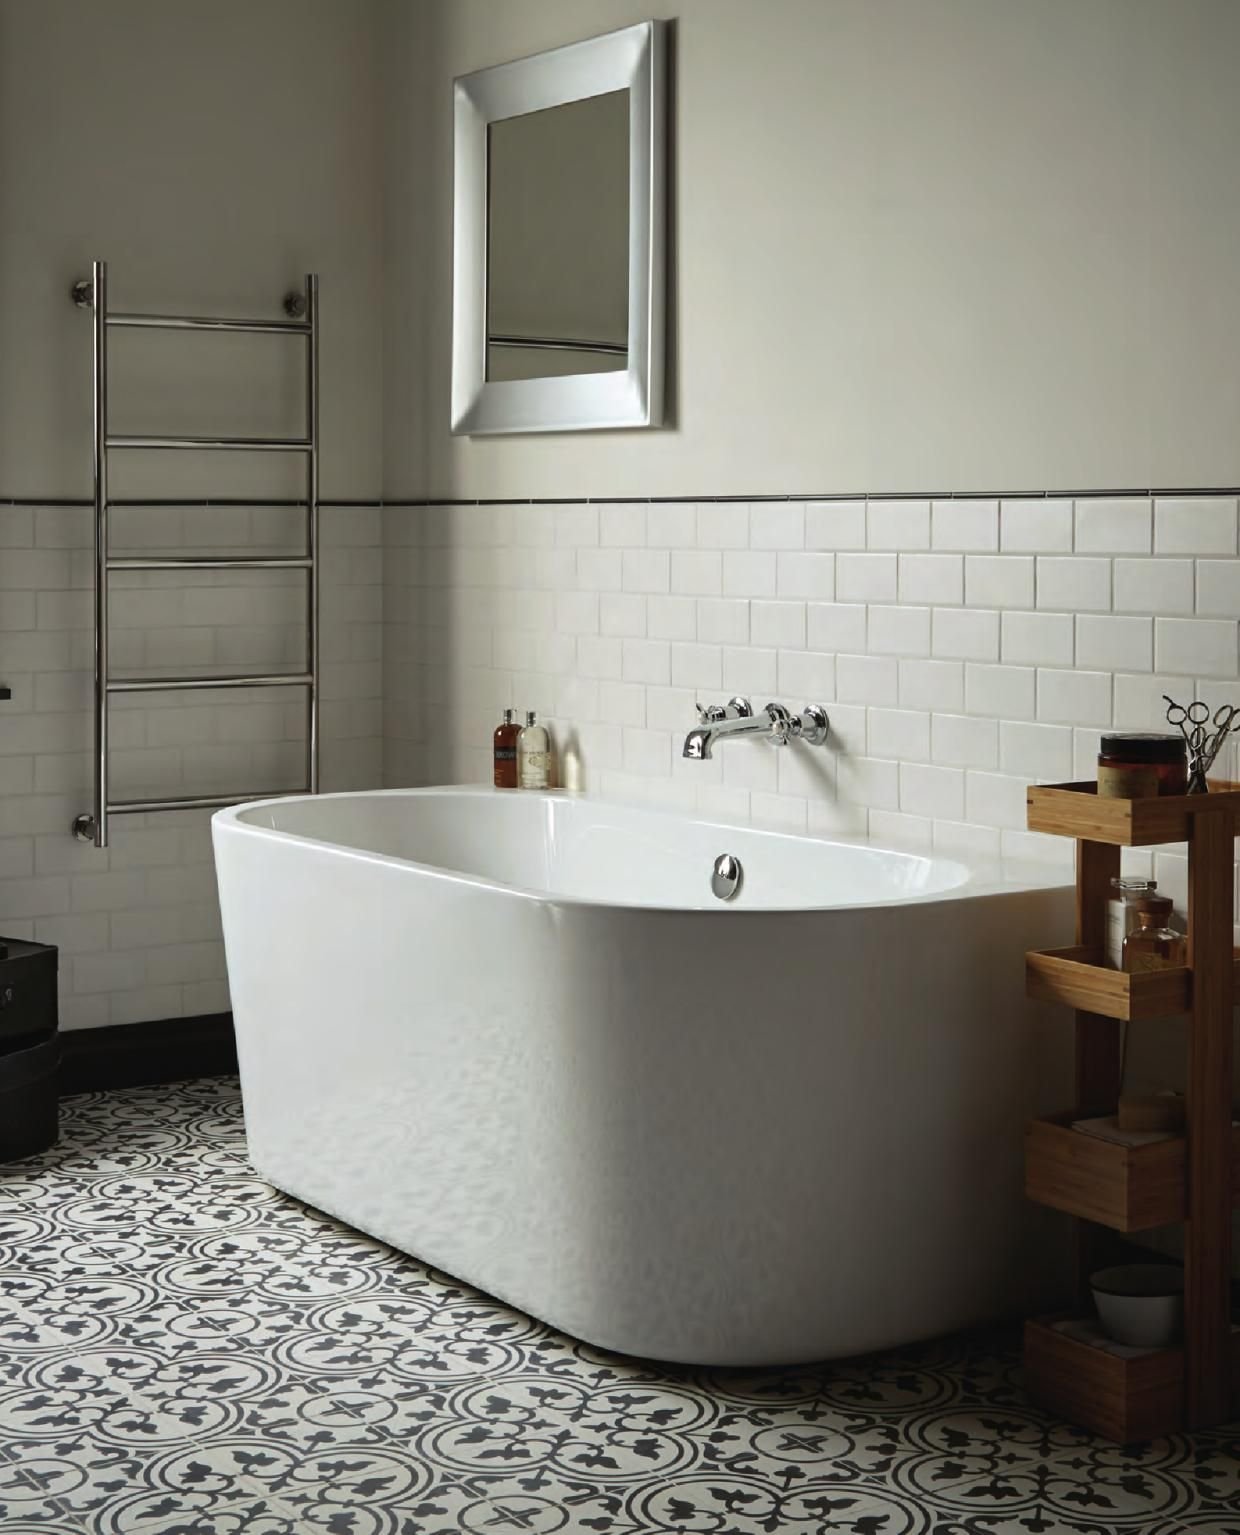 Catalogue | Bathrooms | Pinterest | Wall tiles, Tile painting and ...